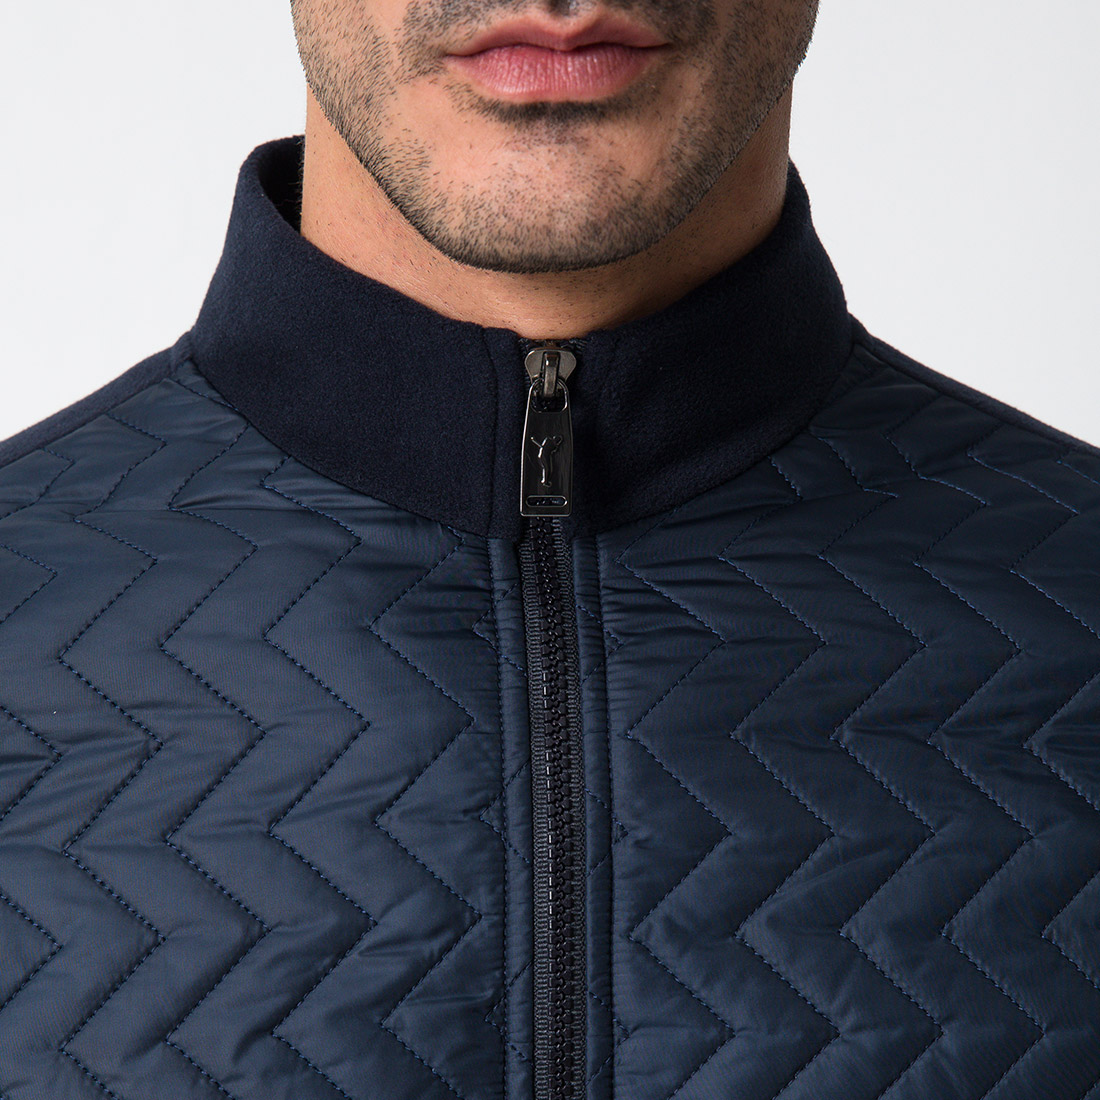 Men's Cold Protection quilted fleece jacket with microfibre material